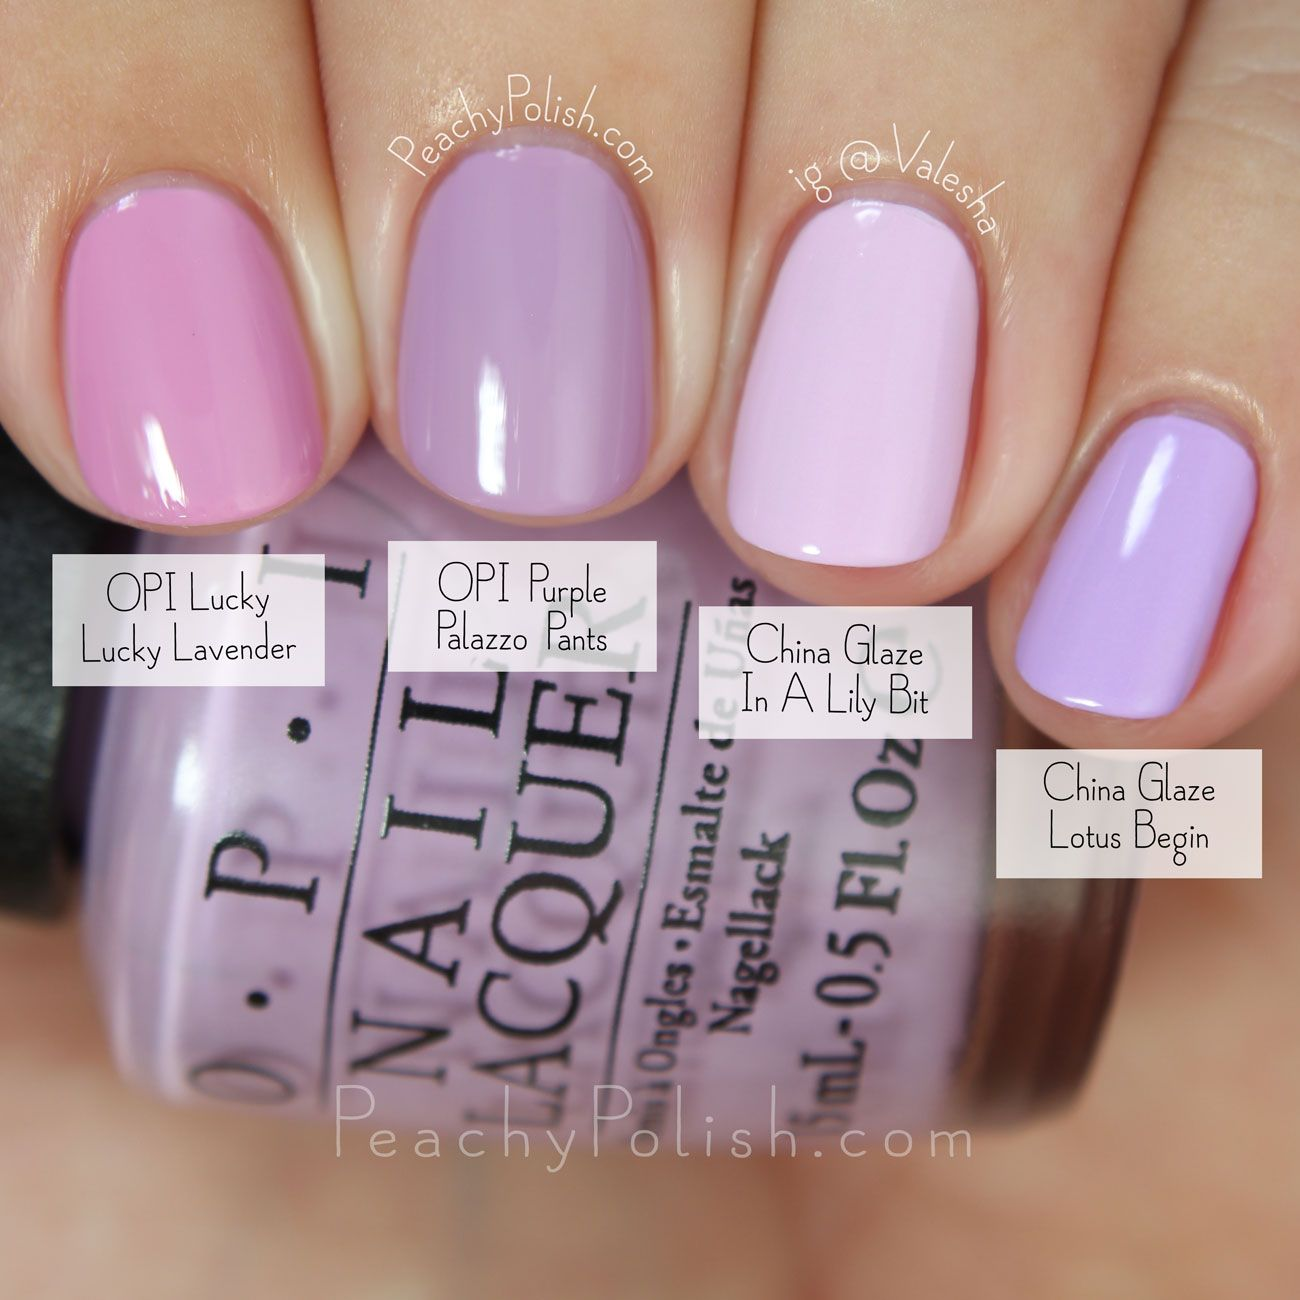 Nice opi nail polish colors list 4 opi nail polish color names list - Opi Purple Palazzo Pants Comparison Fall 2015 Venice Collection Peachy Polish